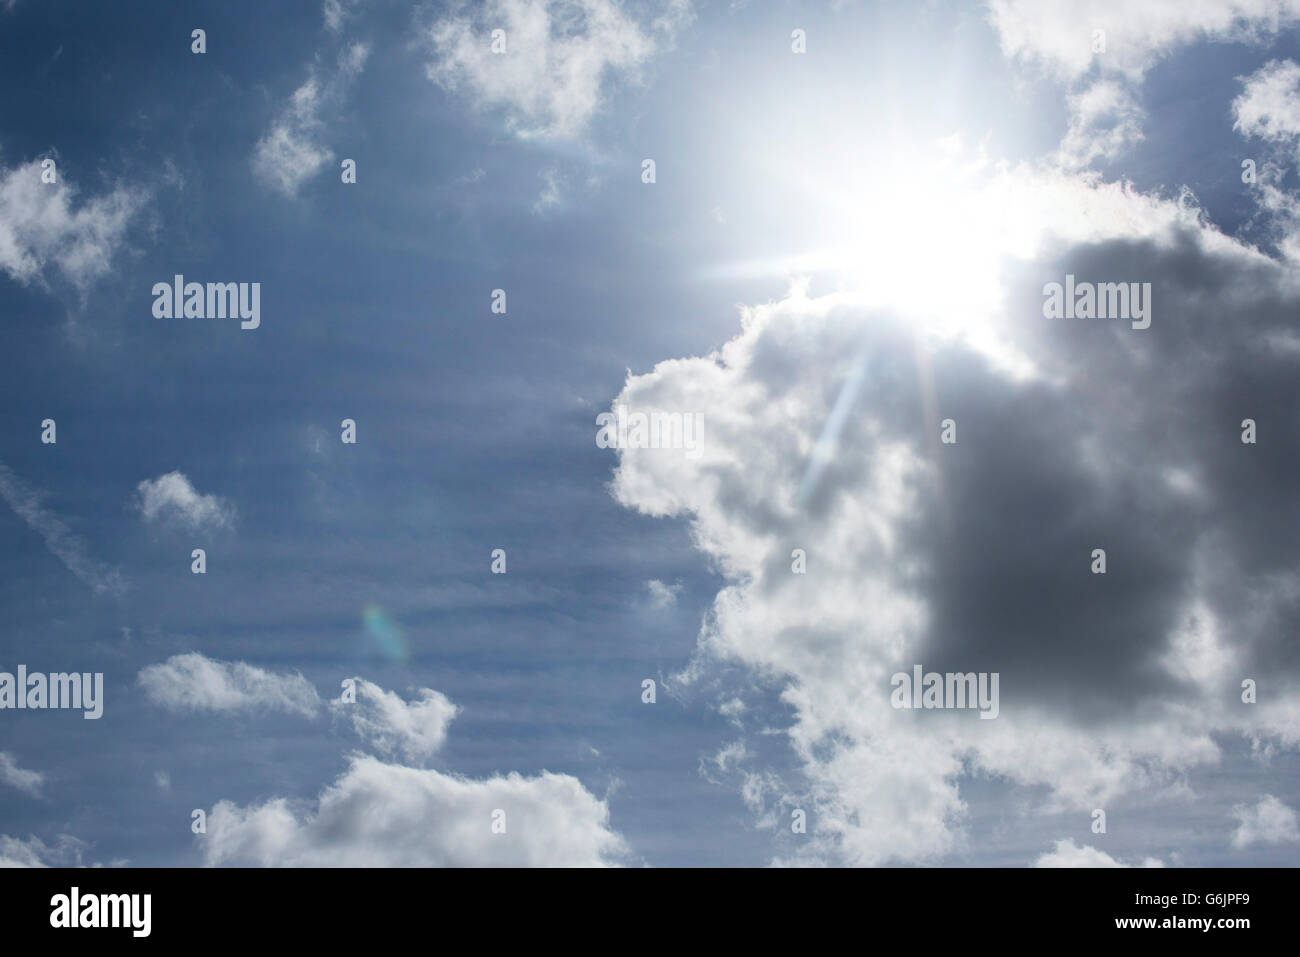 Sunny sky with clouds - Stock Image